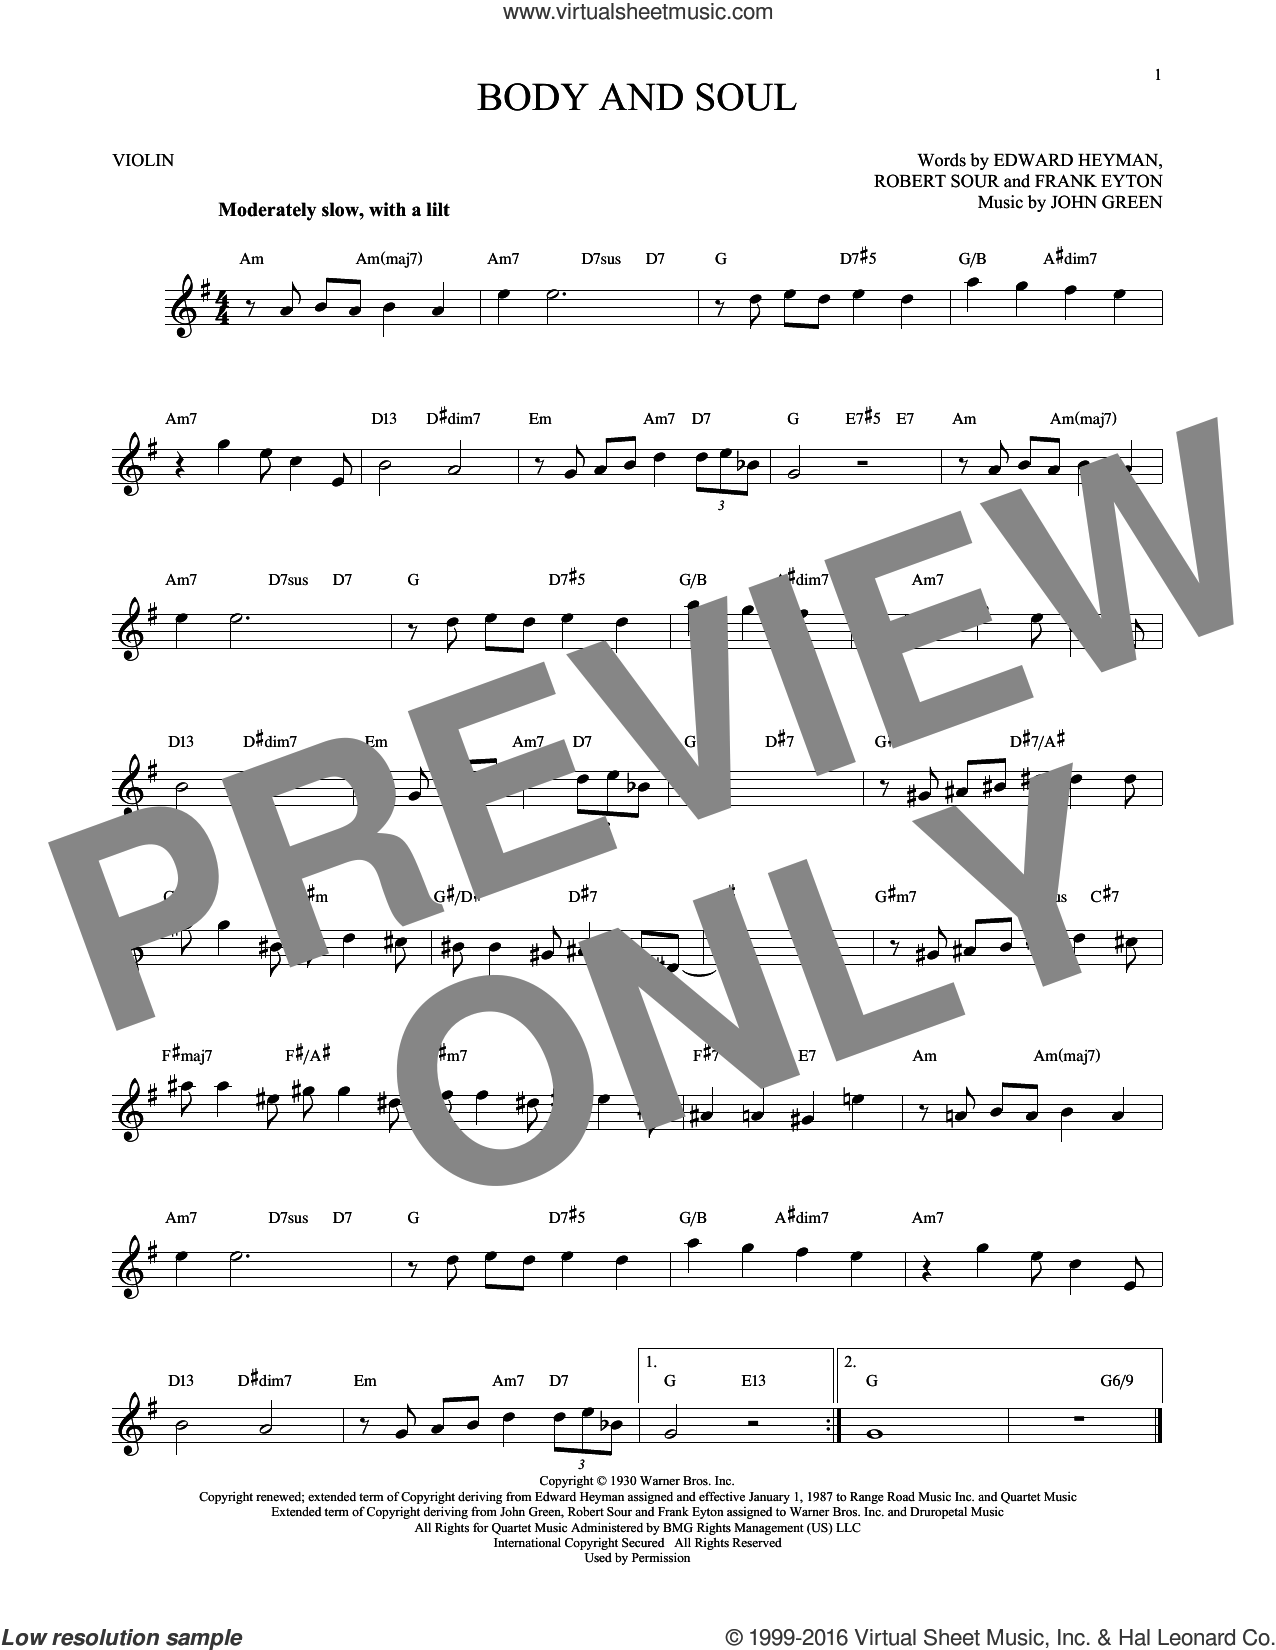 Body And Soul sheet music for violin solo by Edward Heyman, Tony Bennett & Amy Winehouse, Frank Eyton, Johnny Green and Robert Sour, intermediate